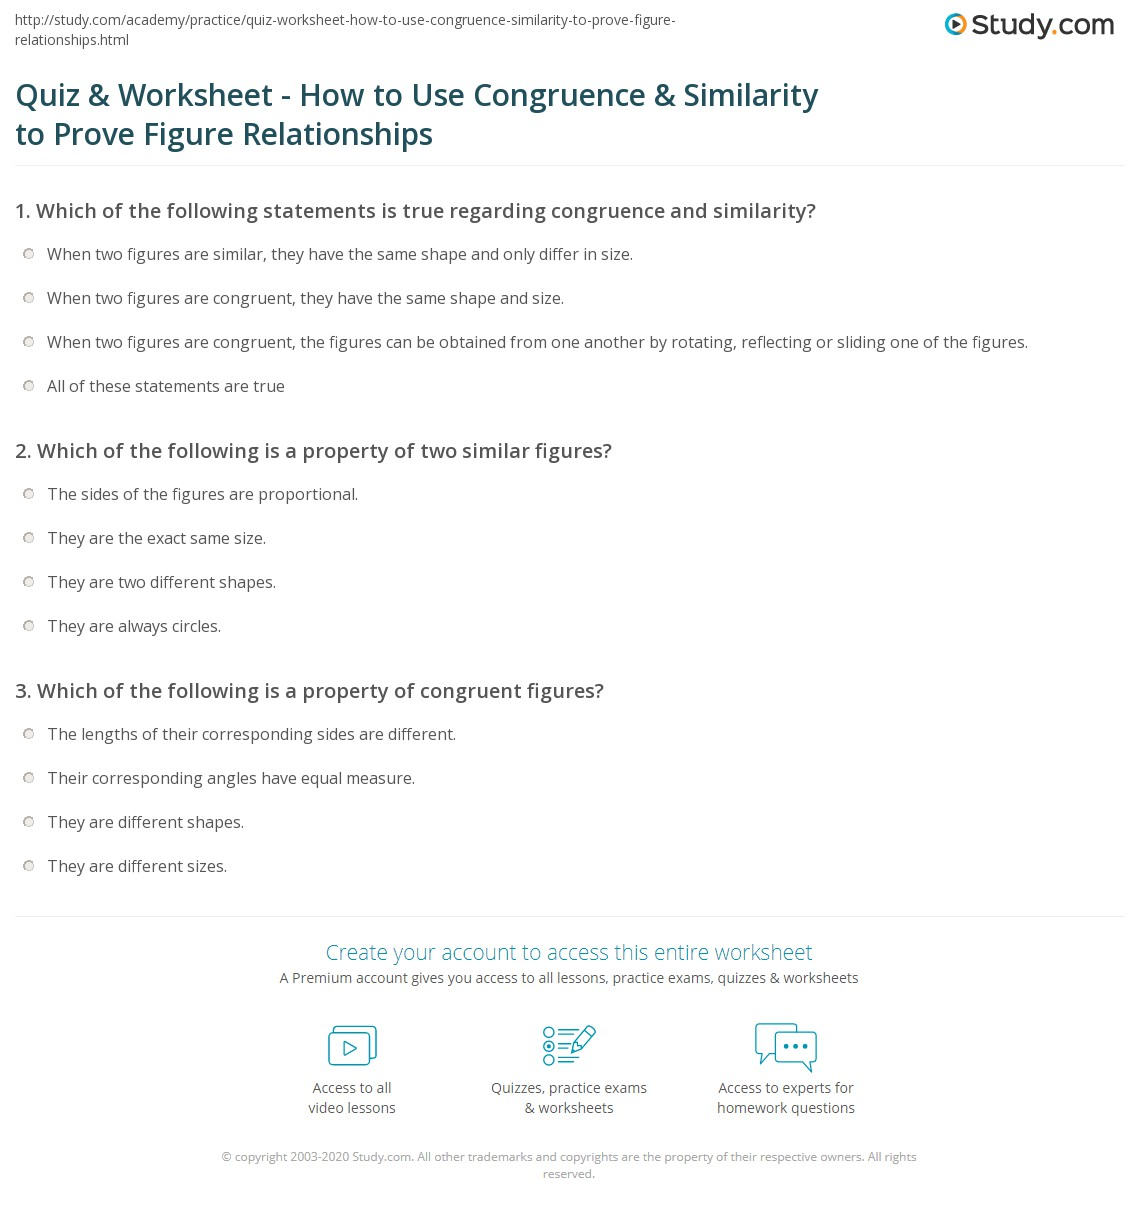 Quiz Worksheet How To Use Congruence Similarity To Prove